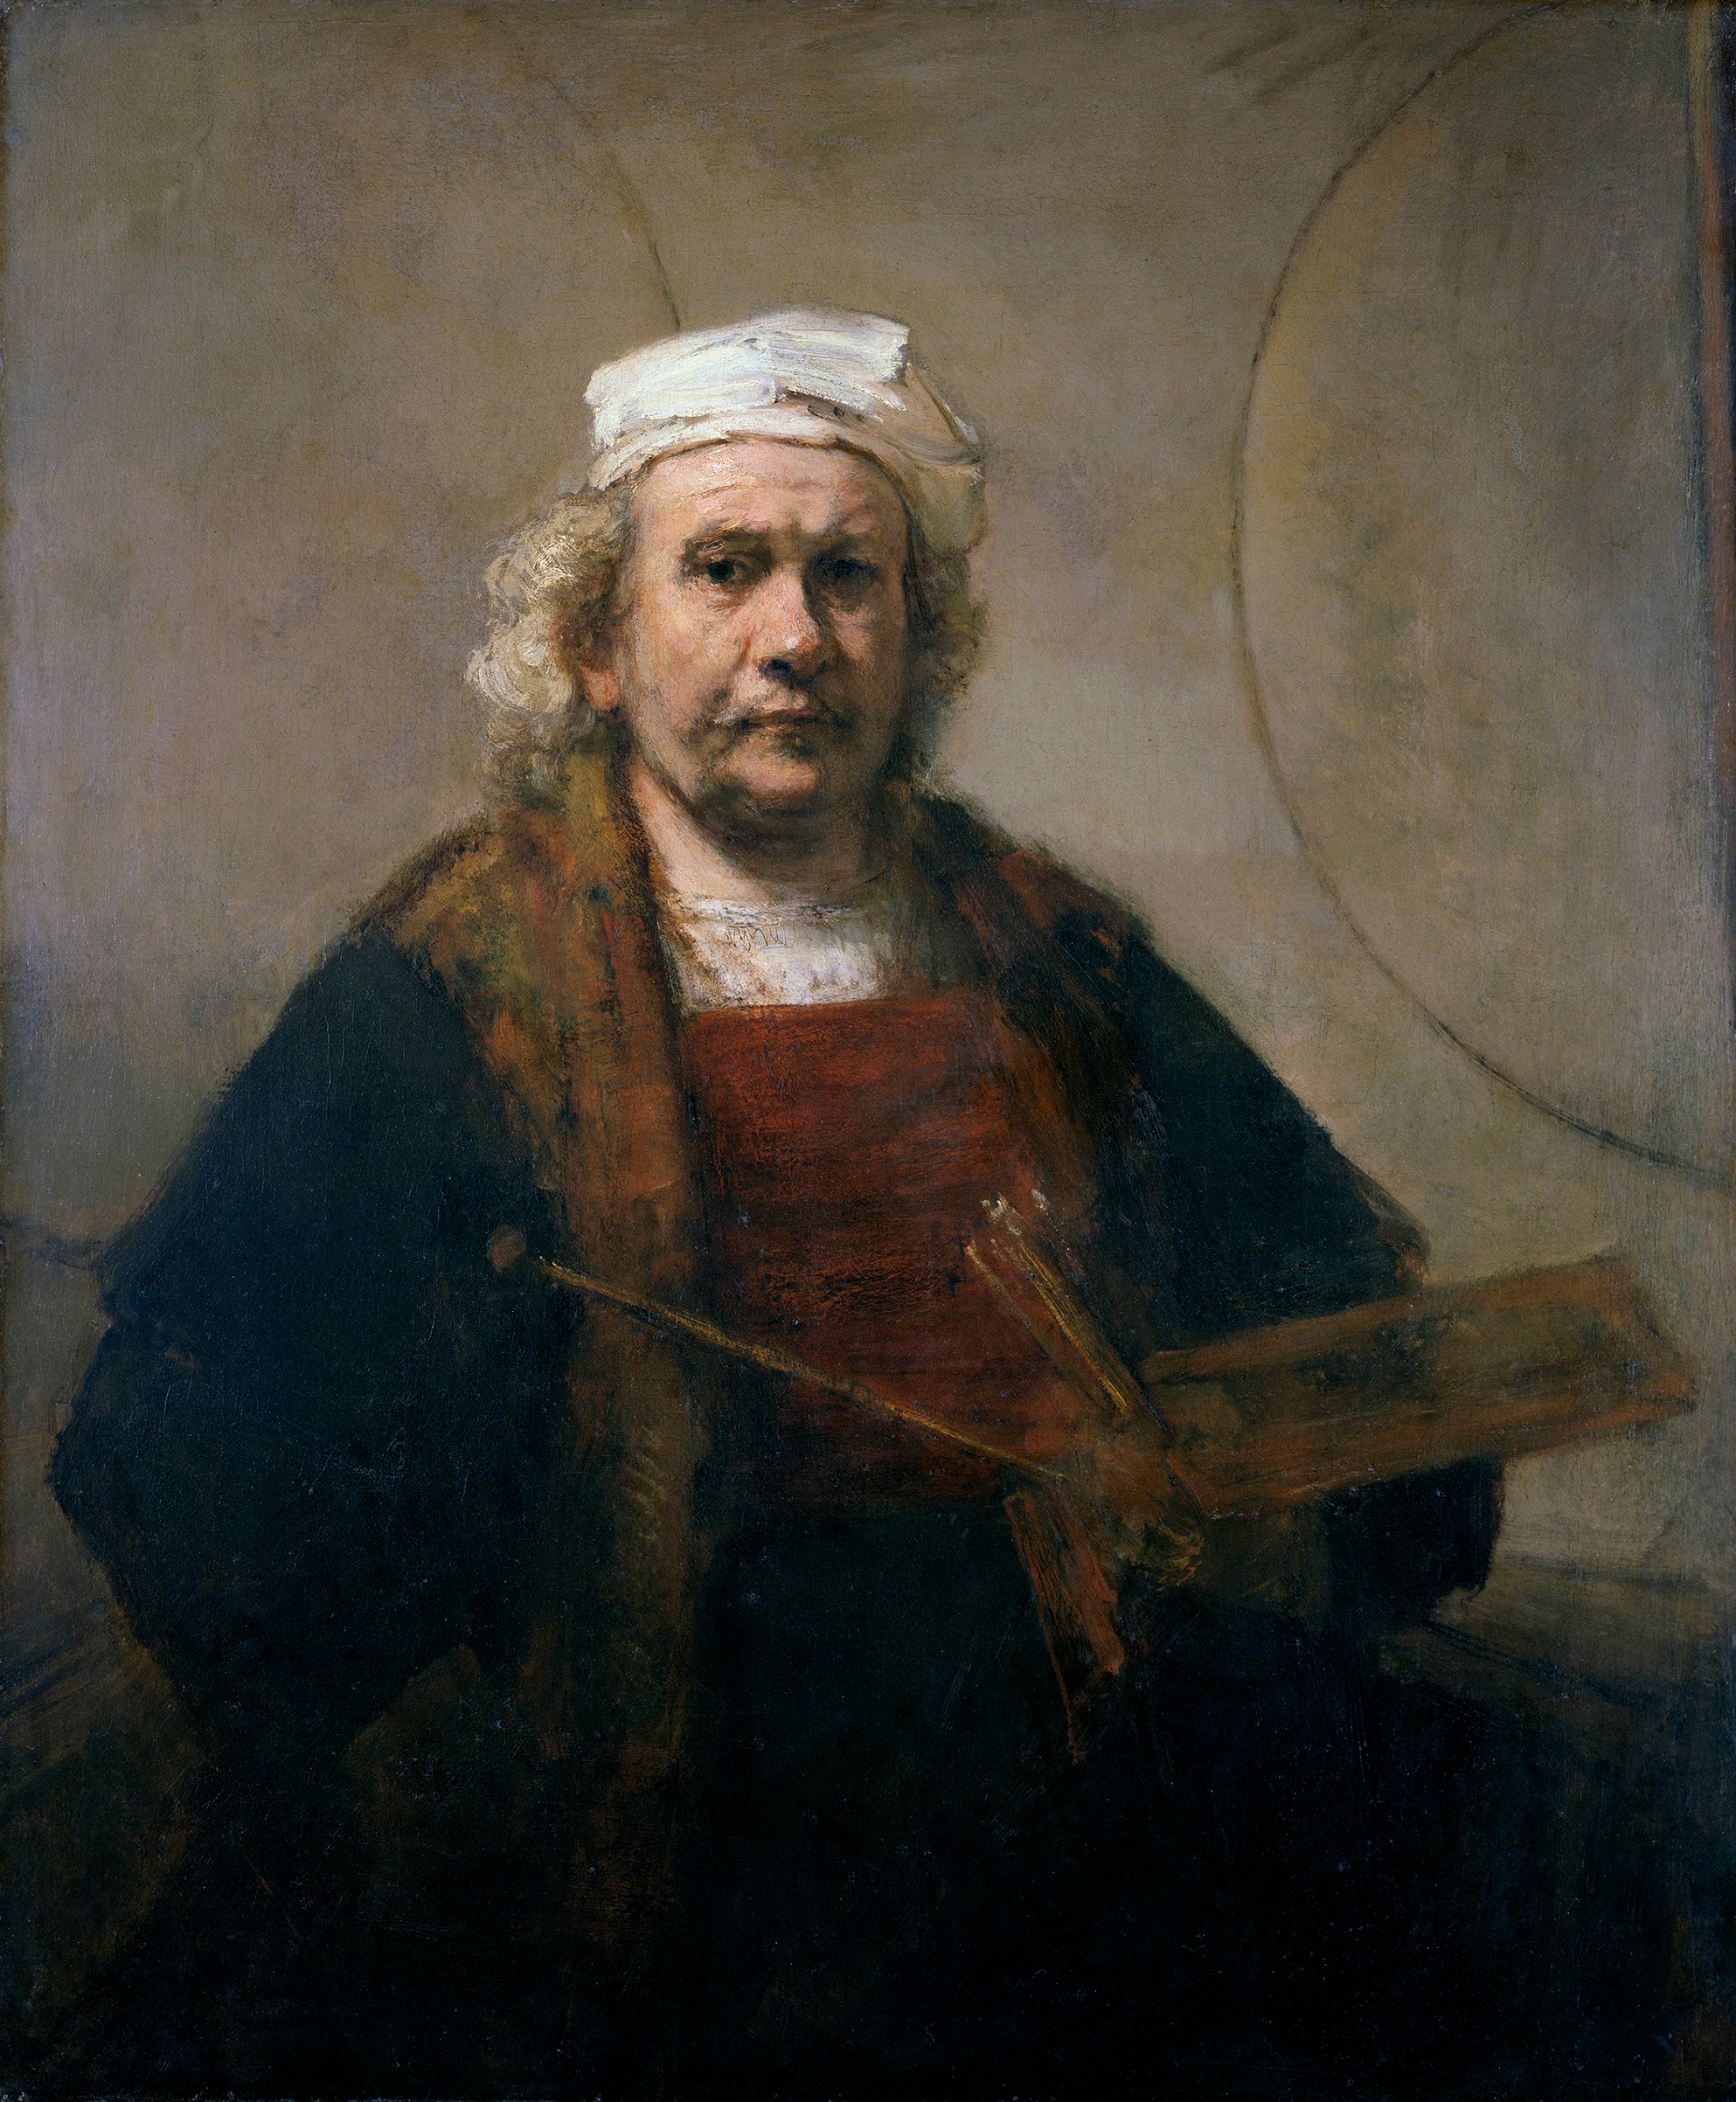 Rembrandt van Rijn, Self-Portrait with Two Circles. C. 1665-69.